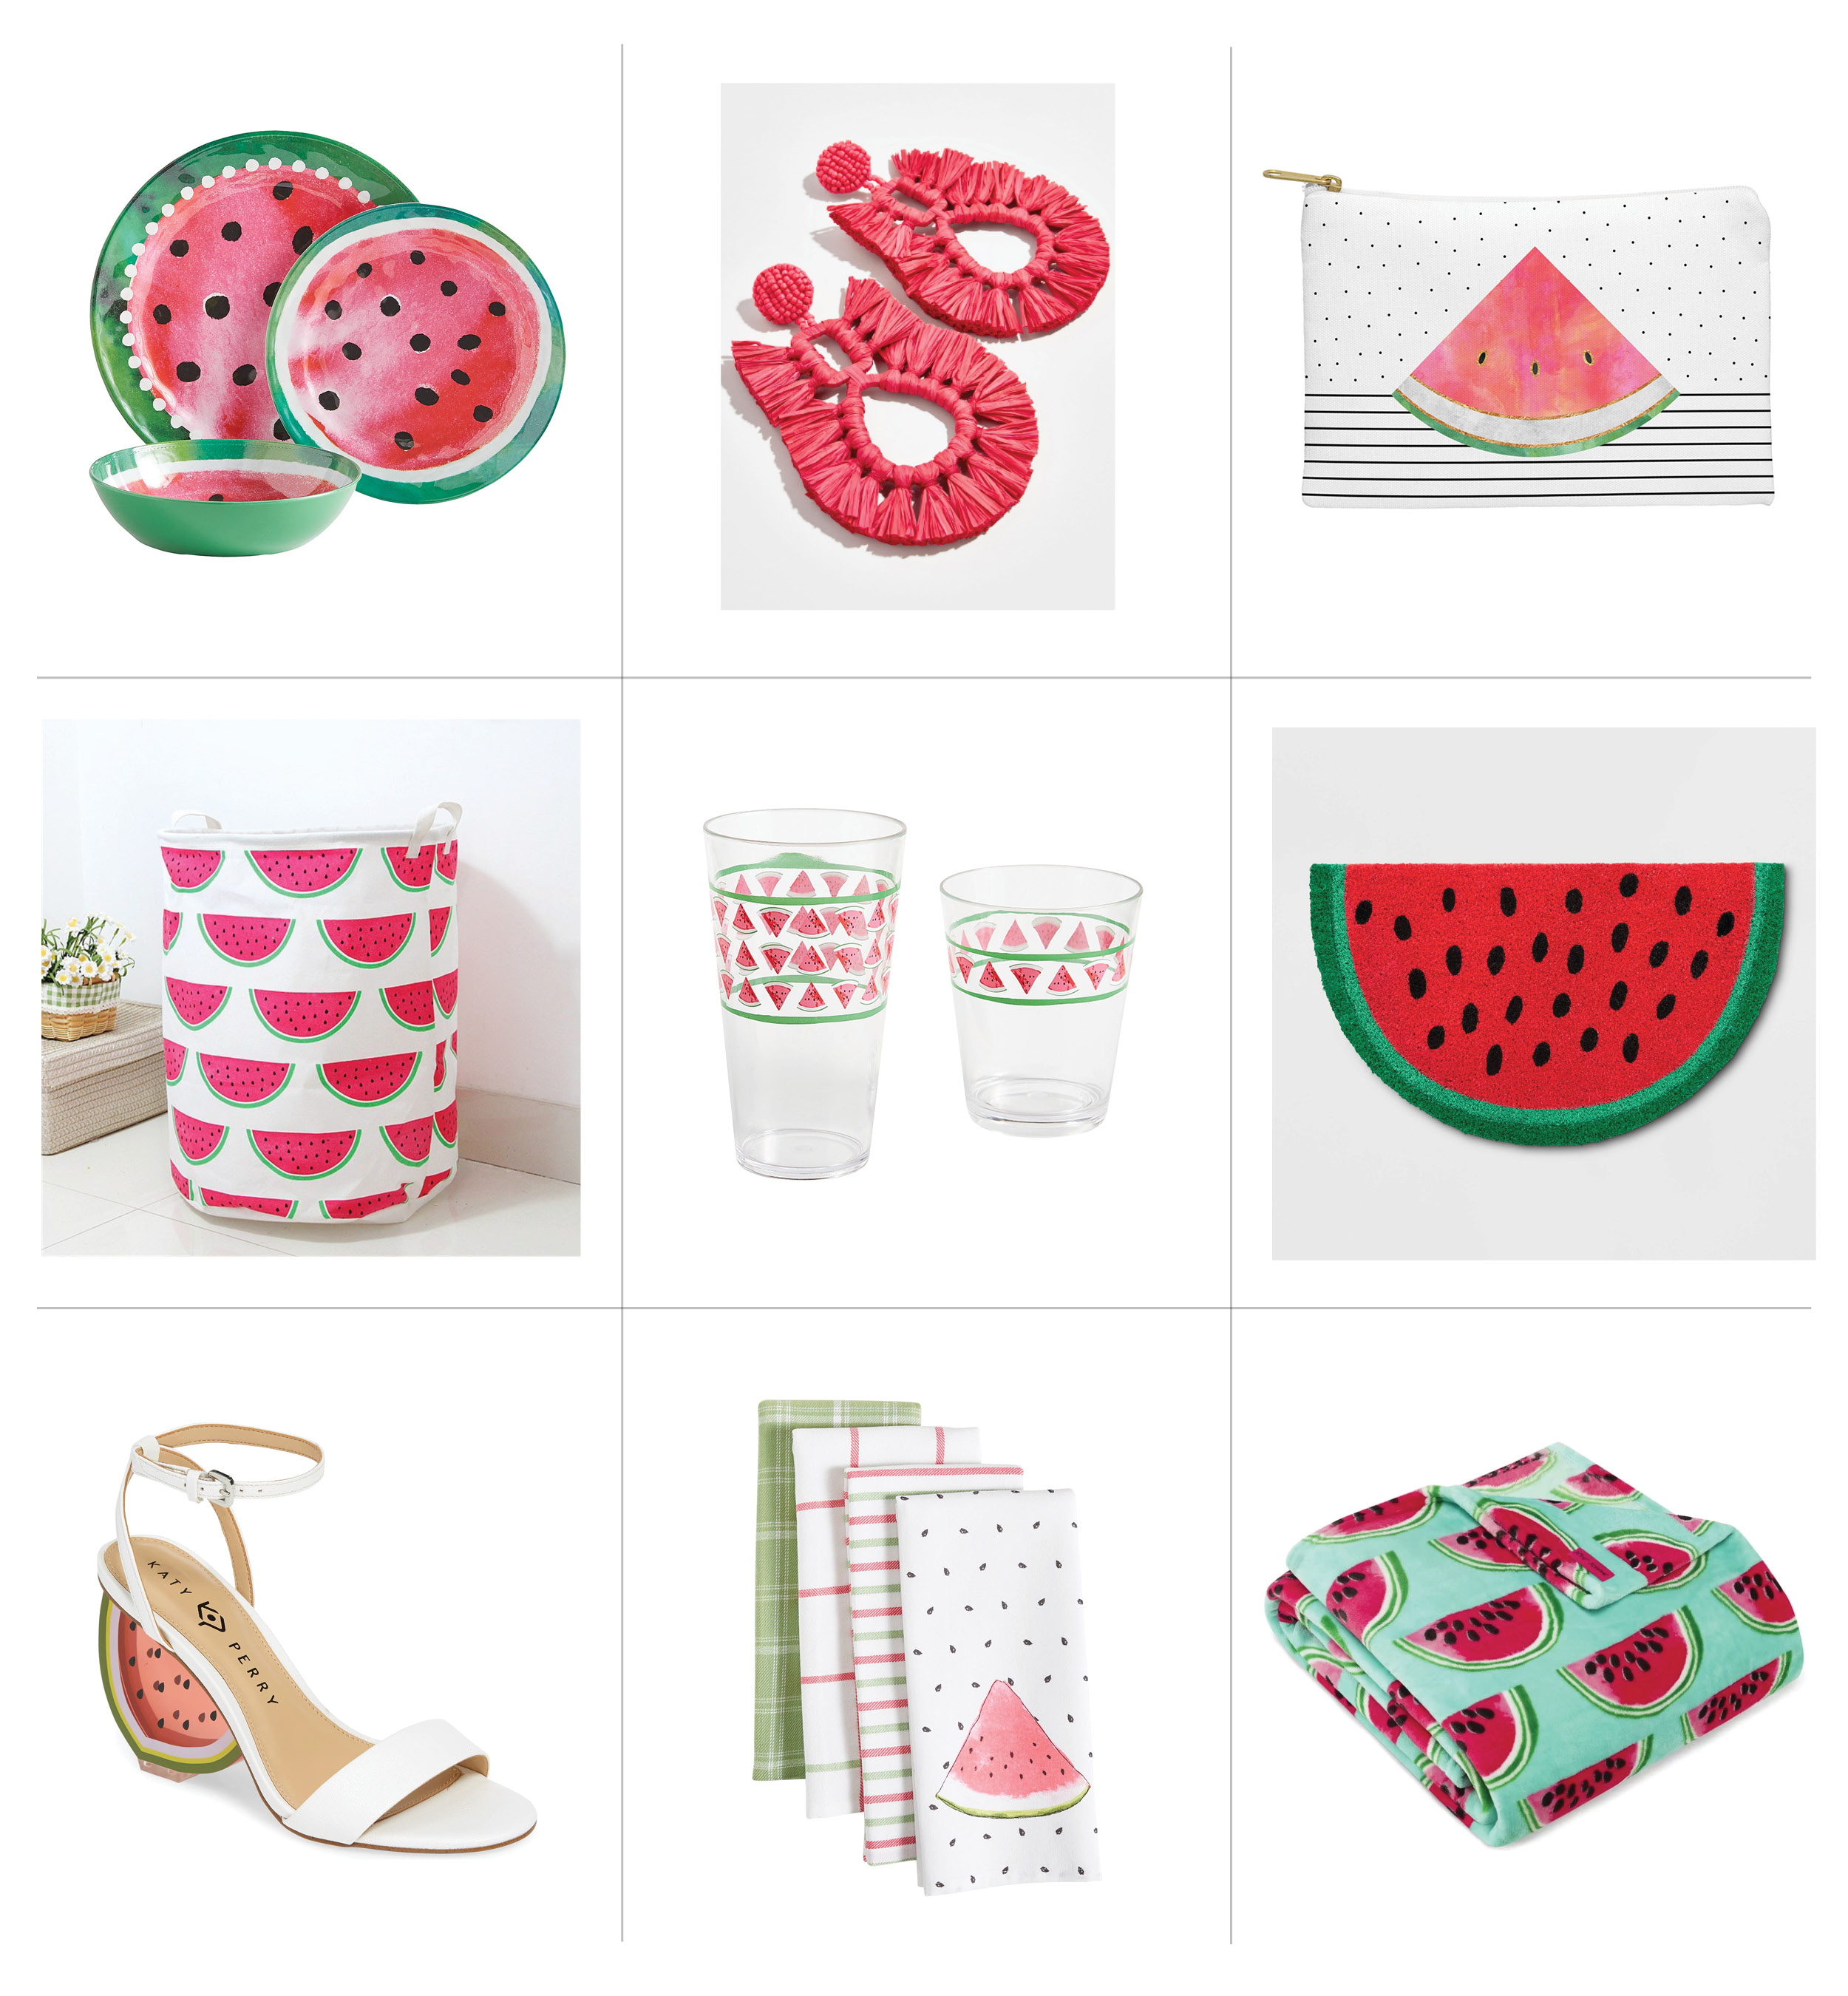 190703_WatermelonProductGrid.jpg